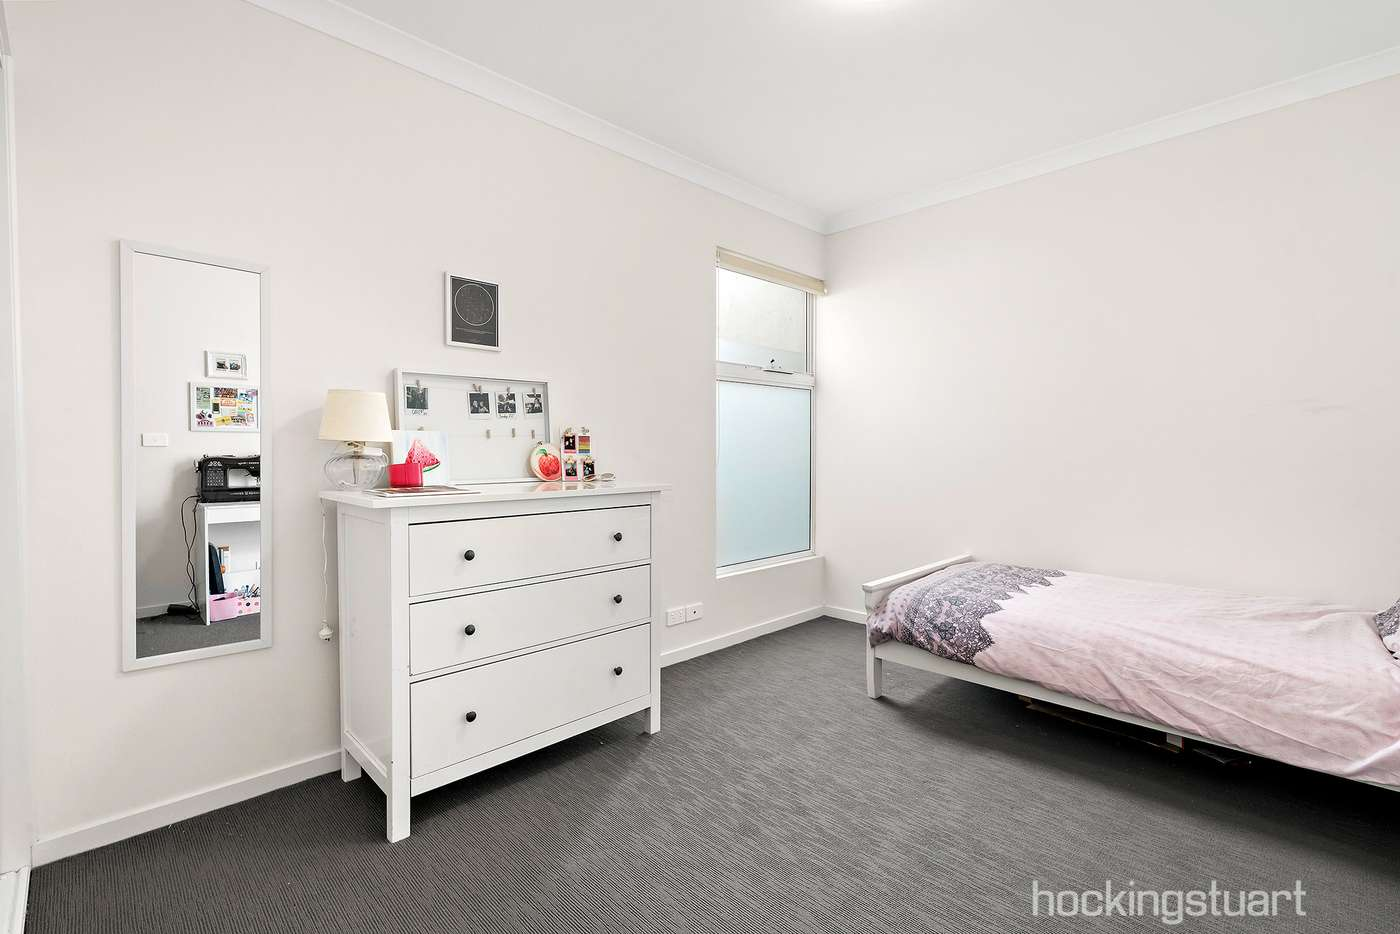 Fifth view of Homely apartment listing, 202/44 Beach Street, Frankston VIC 3199